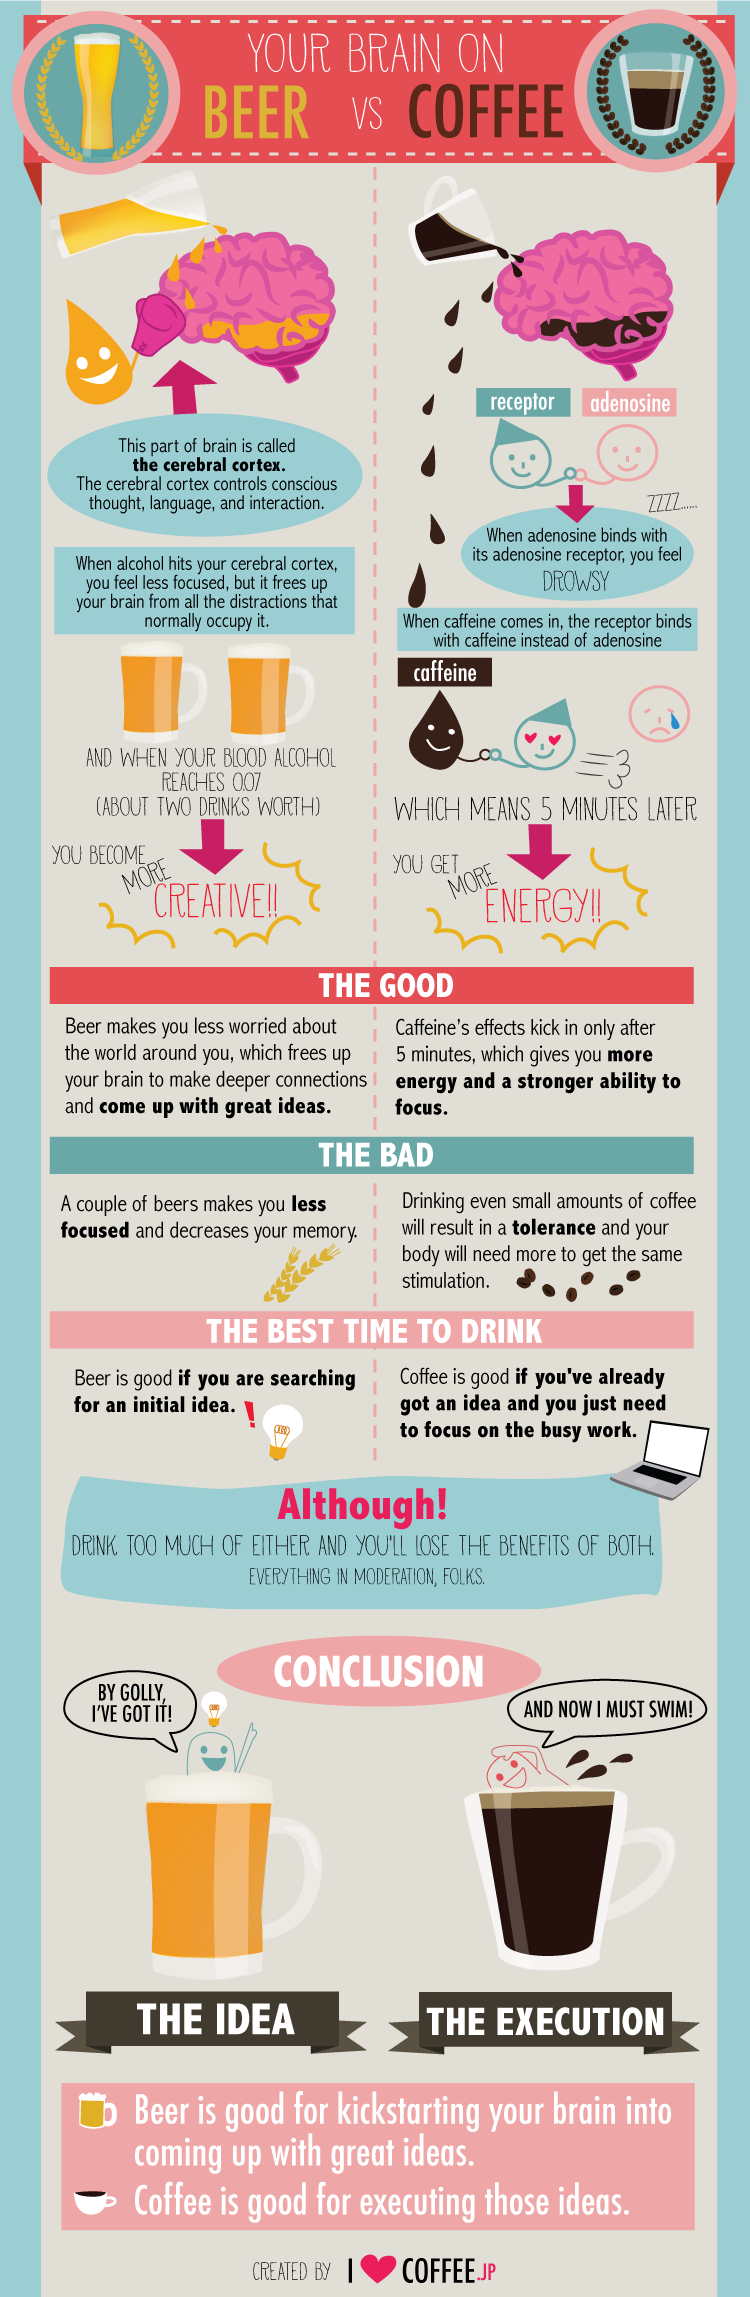 coffee and beer infographic